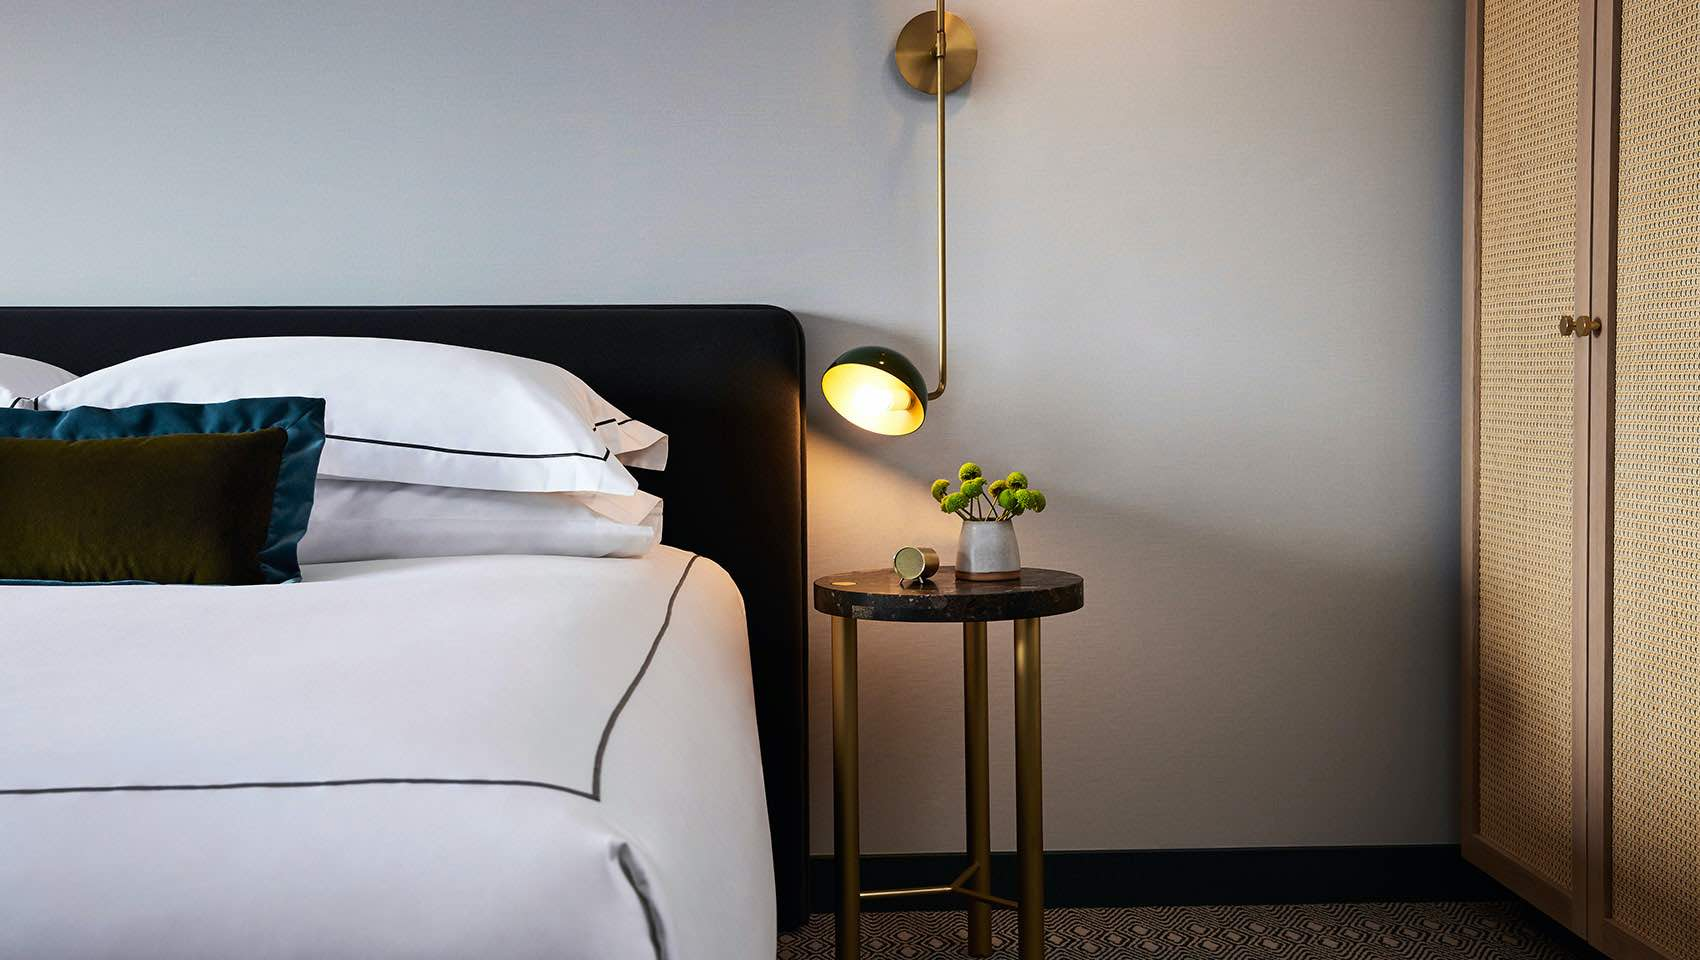 Kimpton Saint George Hotel bedroom with bed and side table